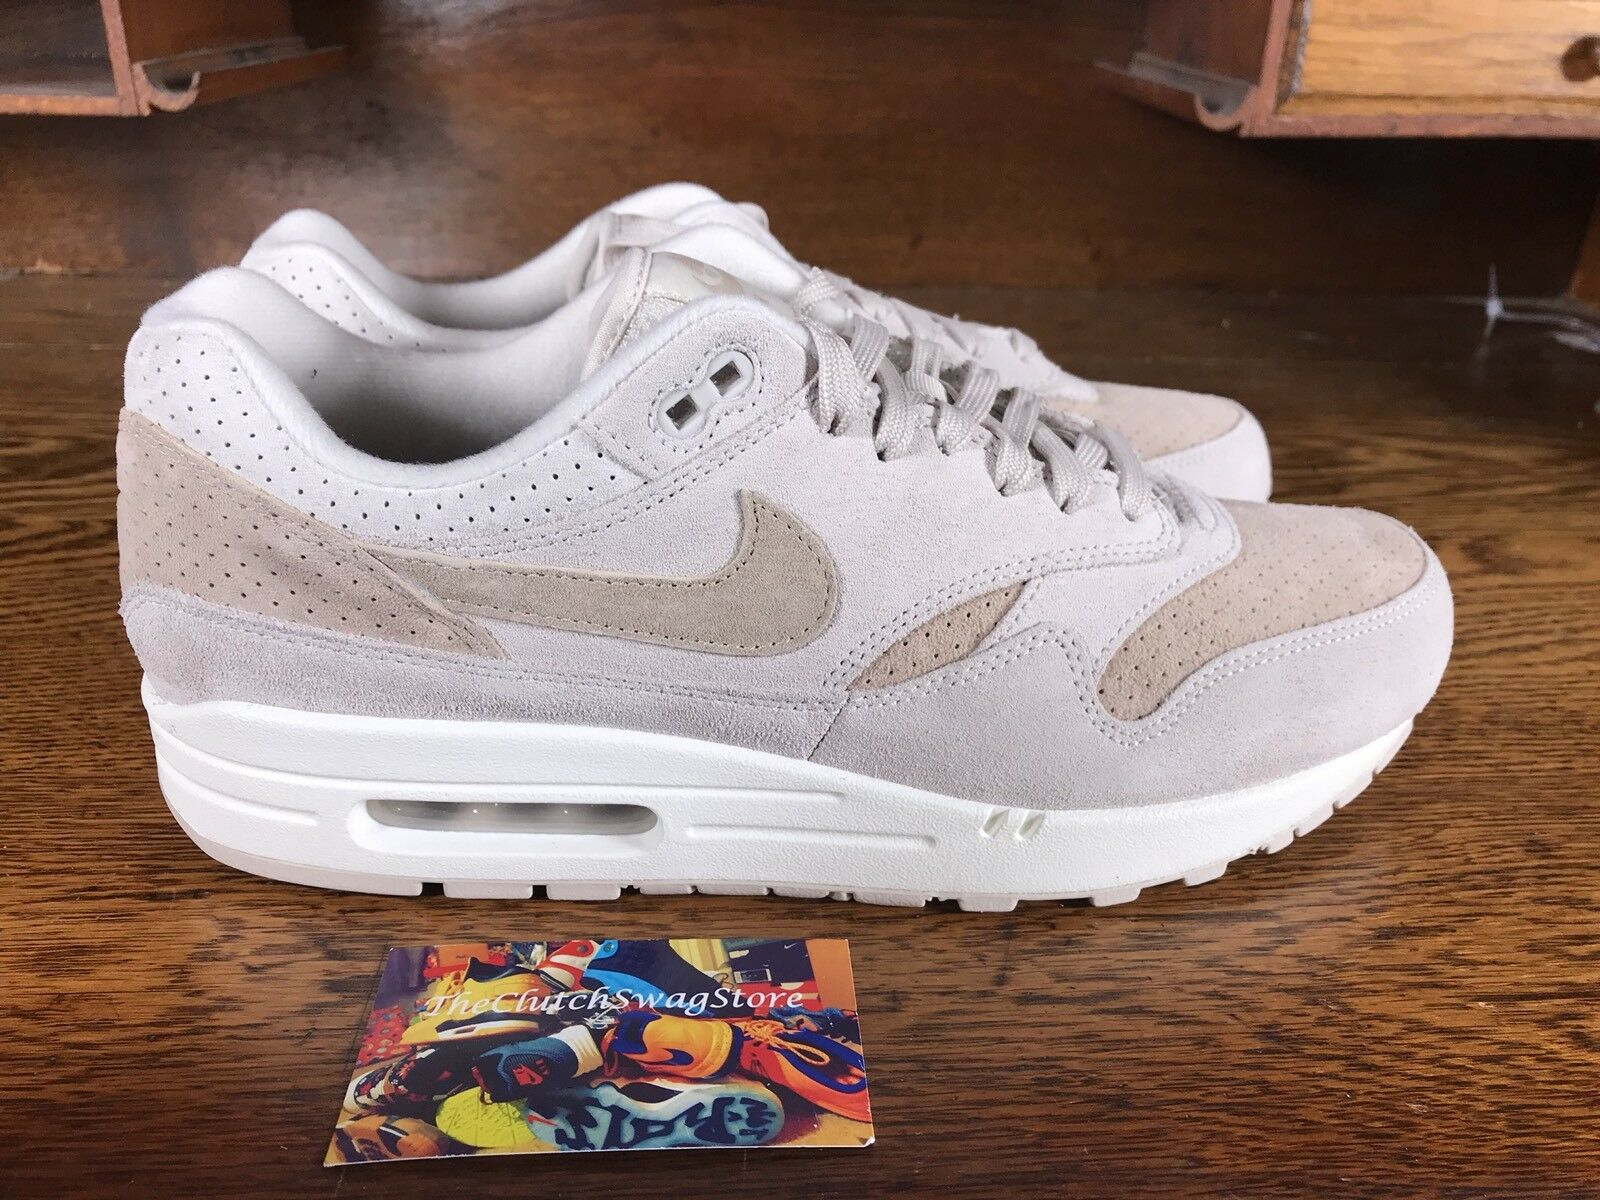 Nike Air Max 1 Premium Mens Running shoes Tan Sail White 875844 004 NEW Size 11.5